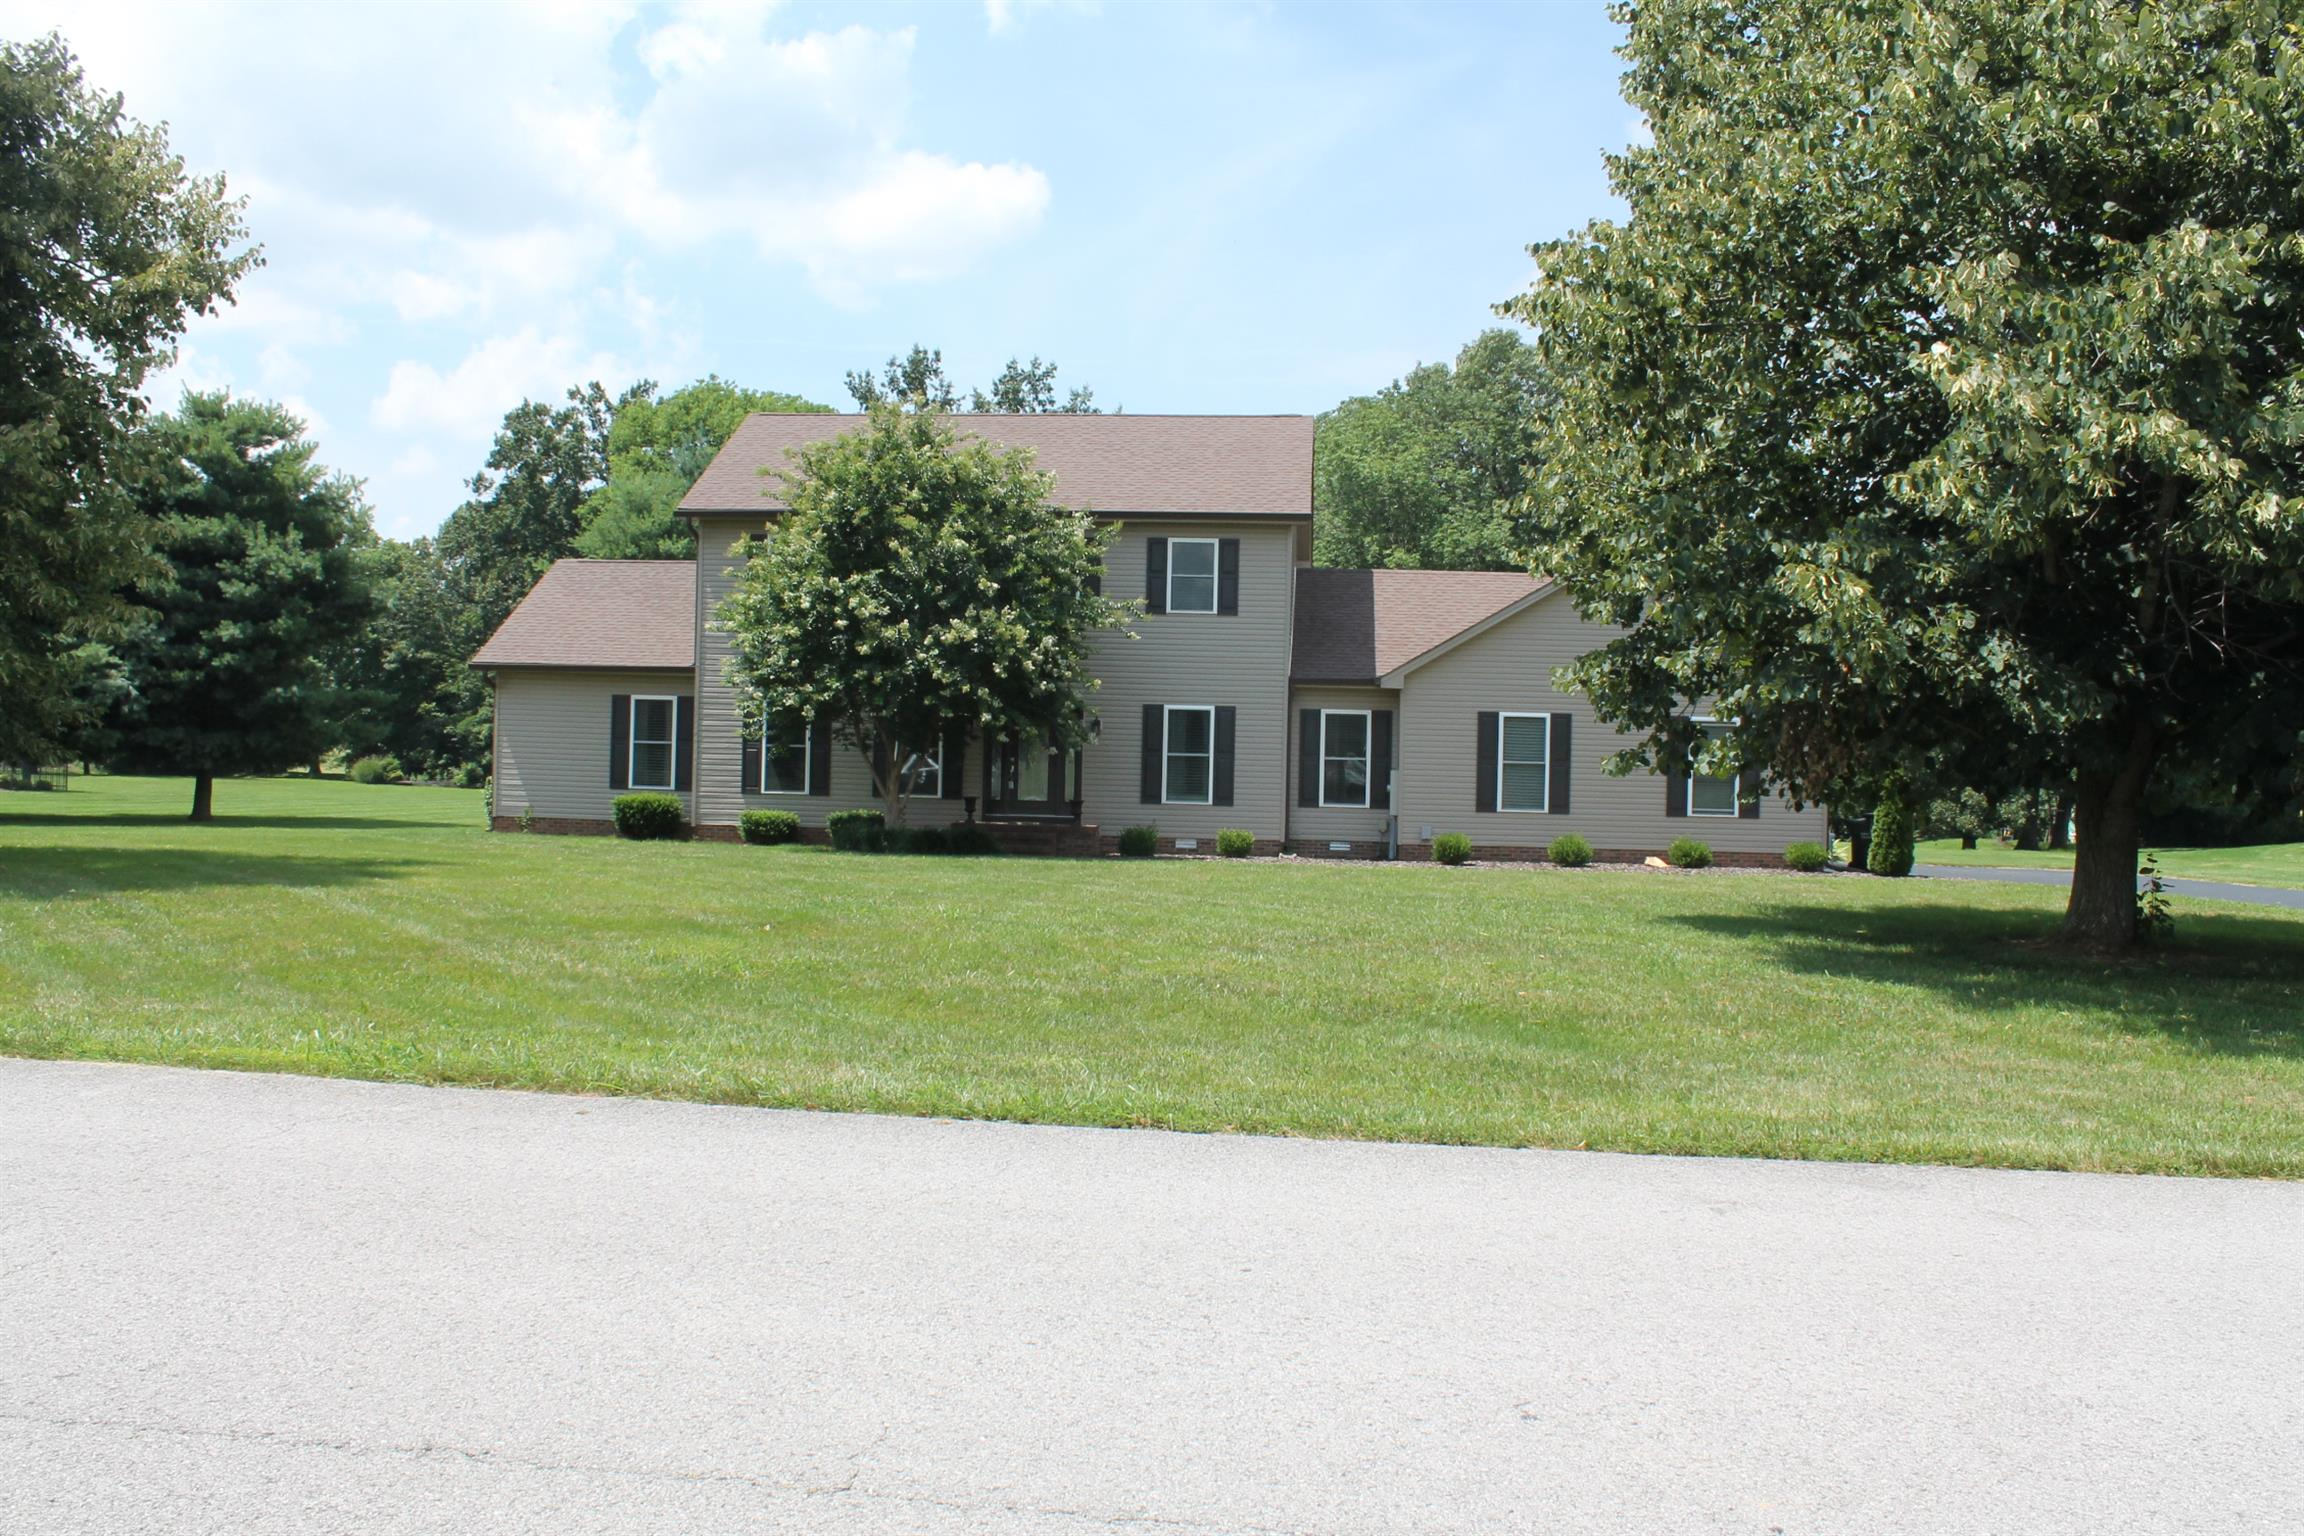 1341 Shallow Lake Circle, Hopkinsville, KY 42240 - Hopkinsville, KY real estate listing